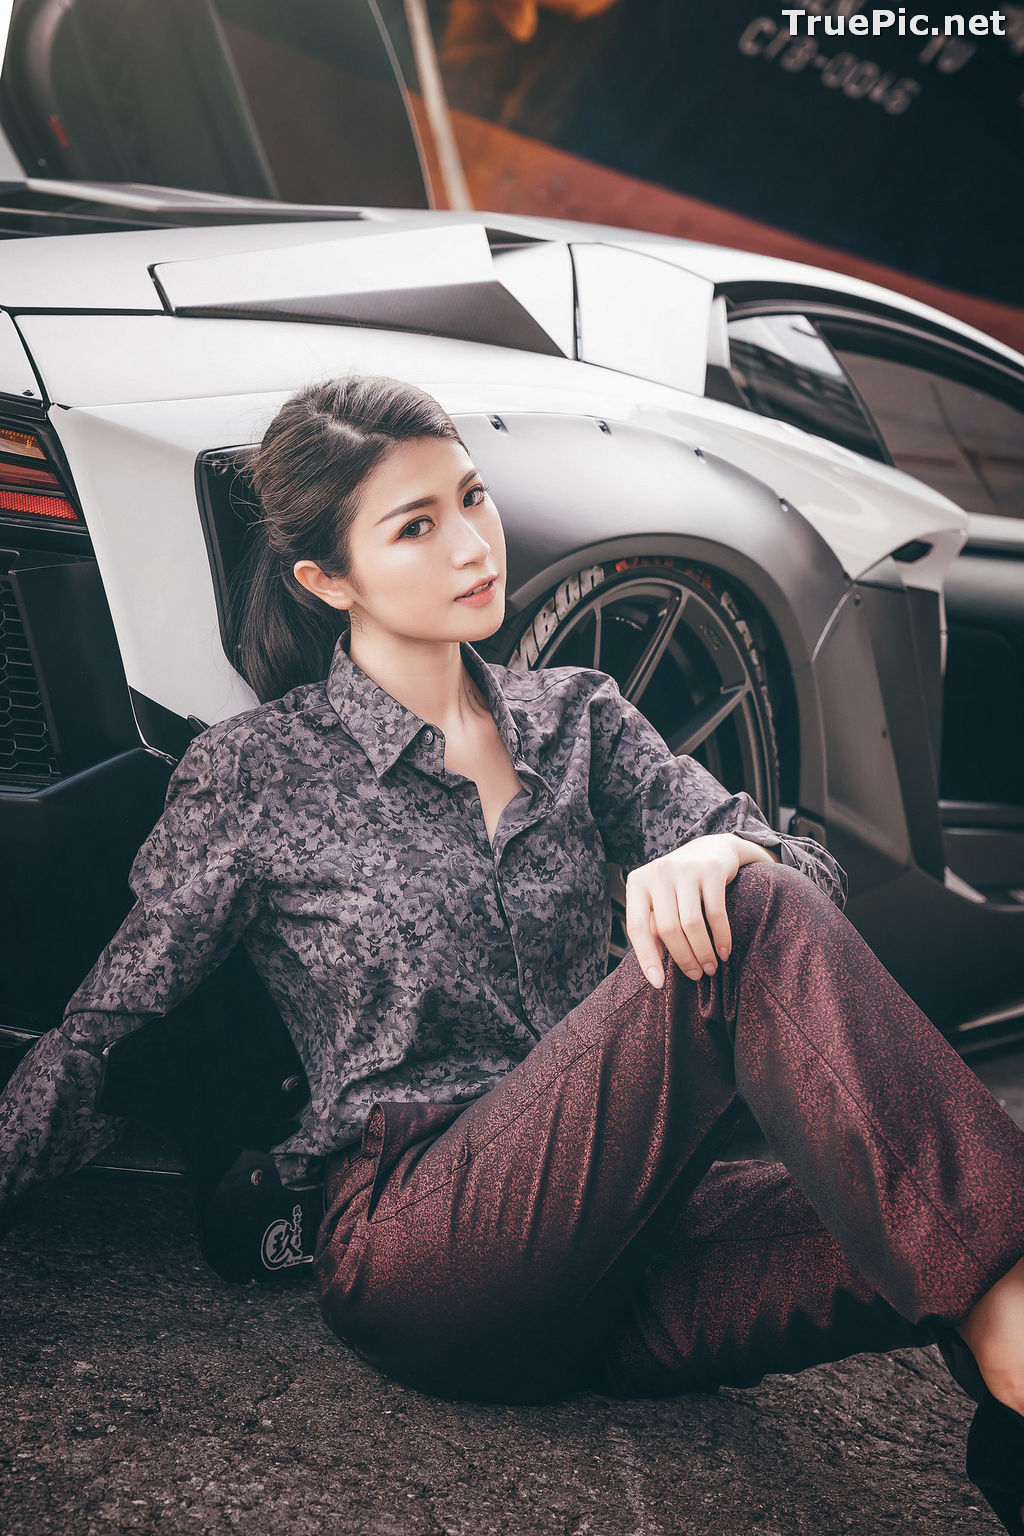 Image Taiwanese Model - 珈伊Femi - Sexy Beautiful Girl and Supercars - TruePic.net - Picture-7